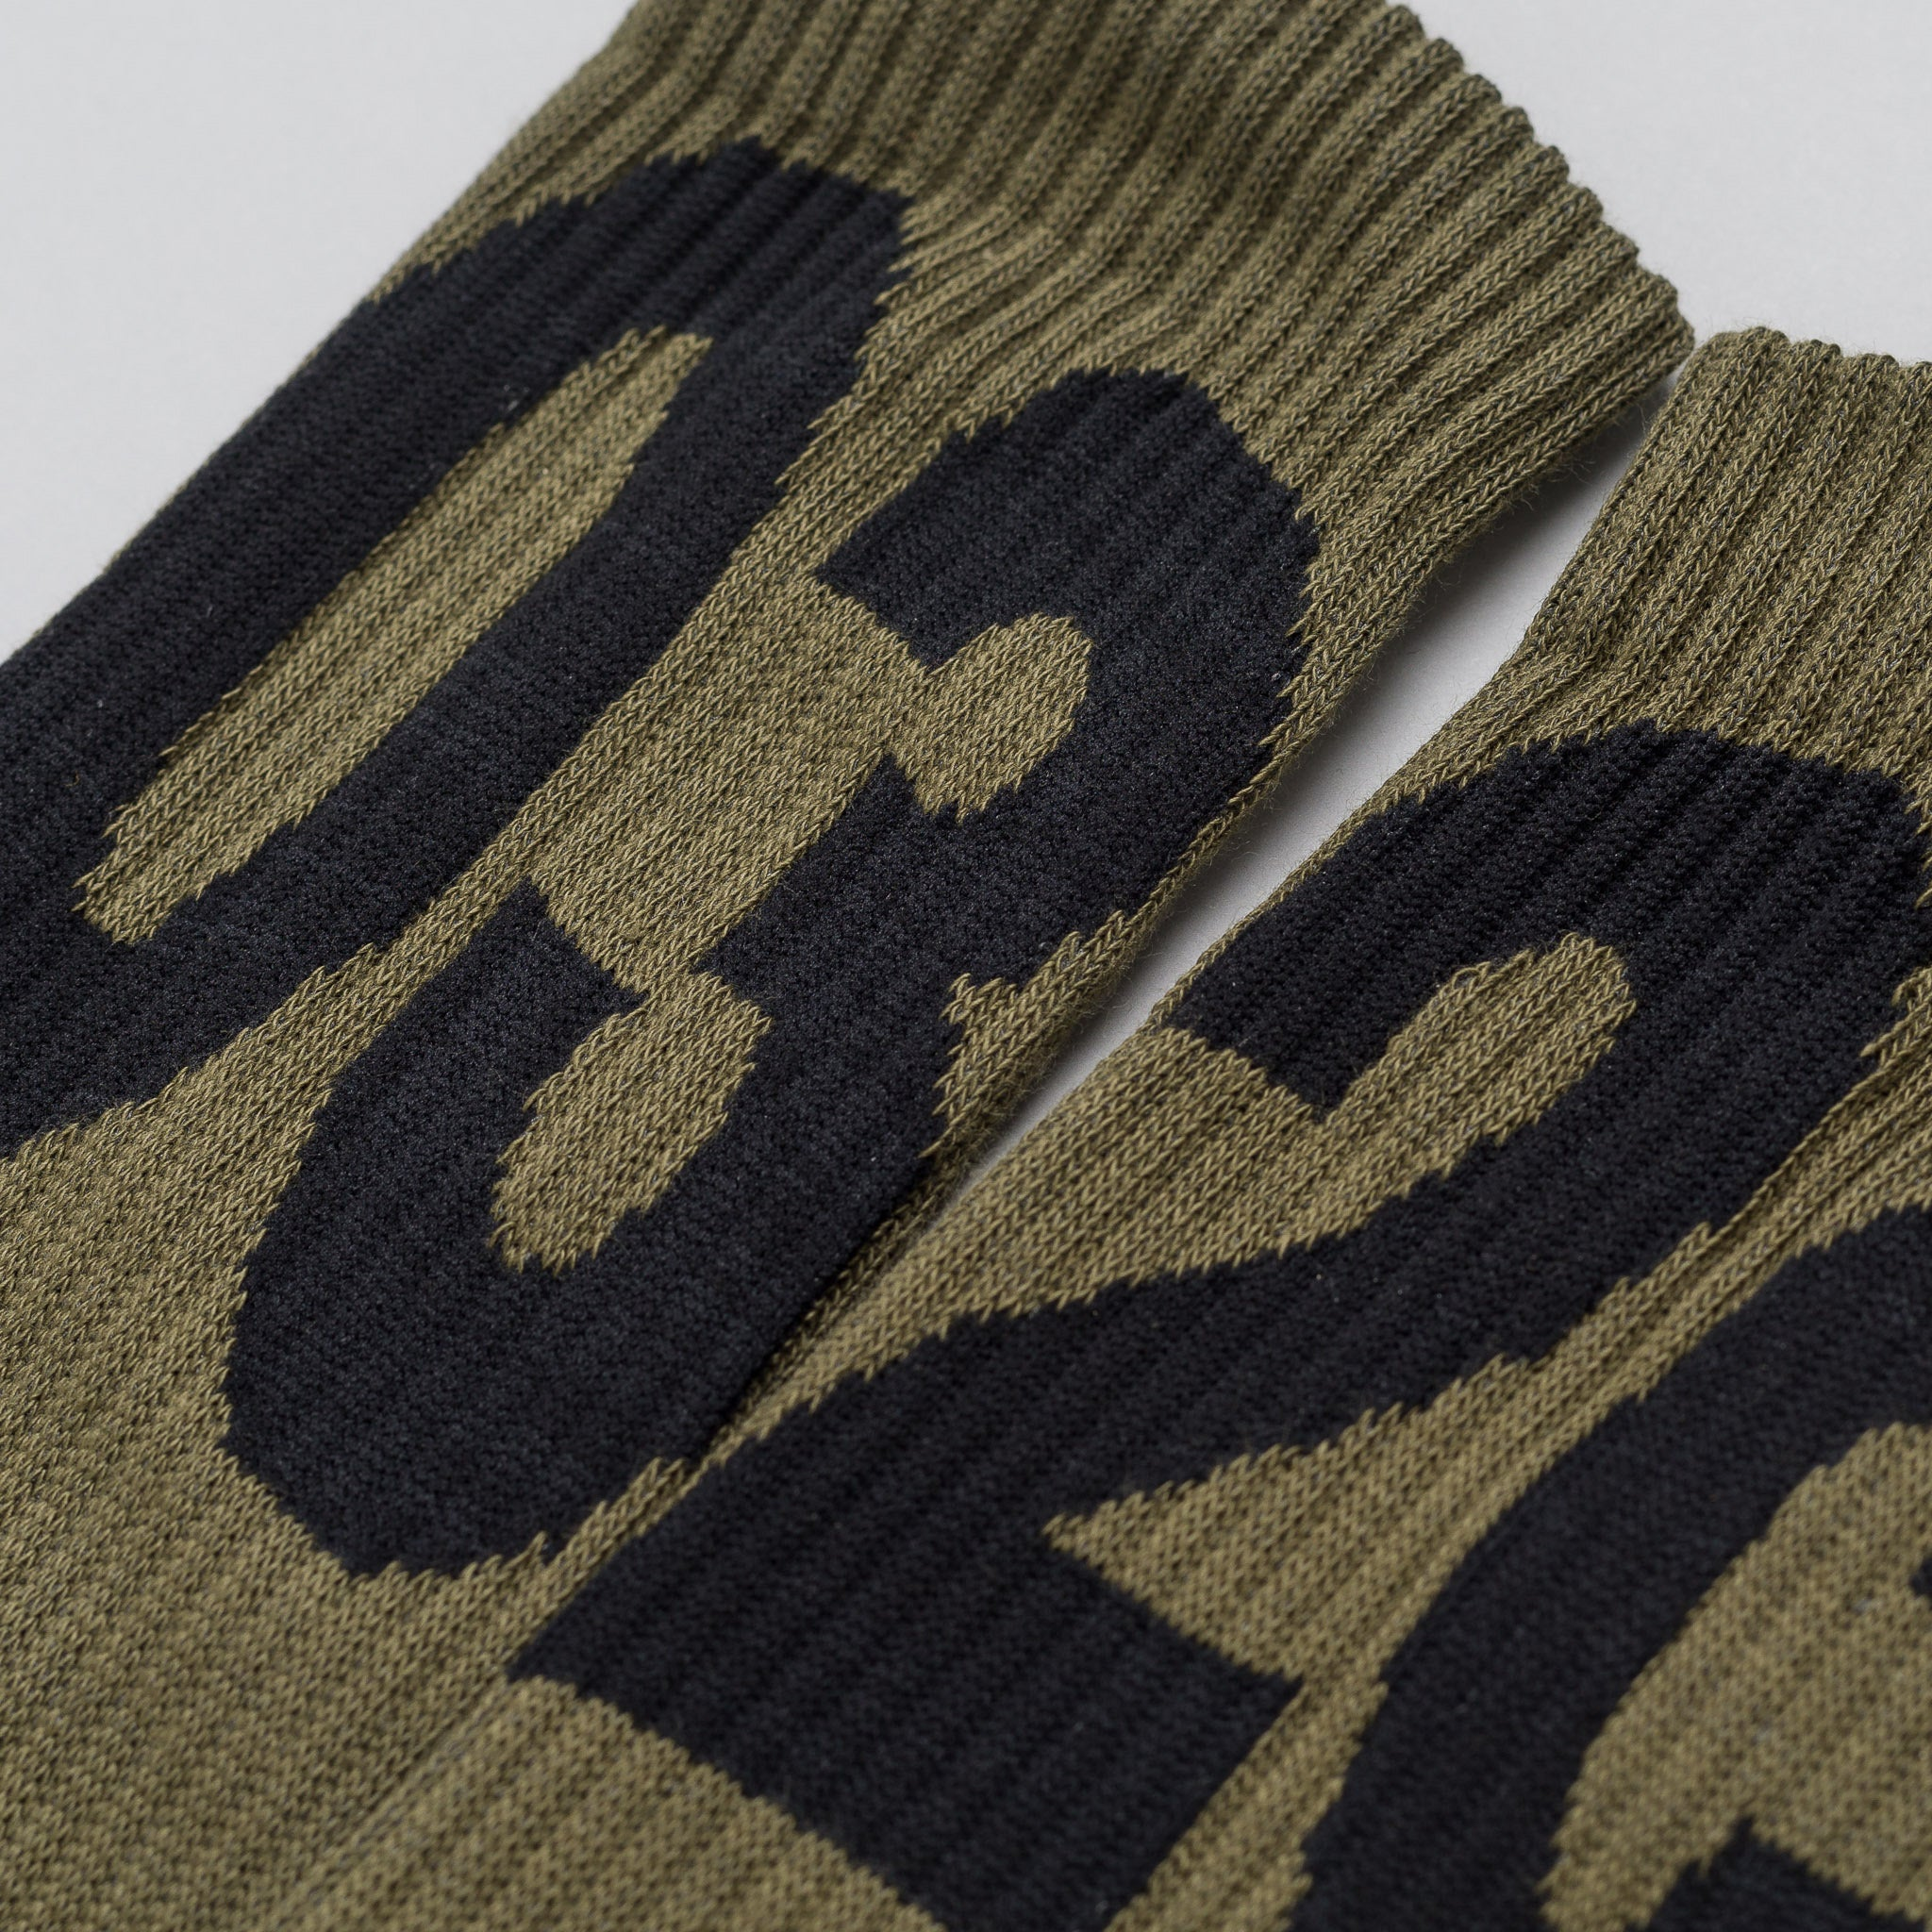 032C Socks in Hunter Green/Black